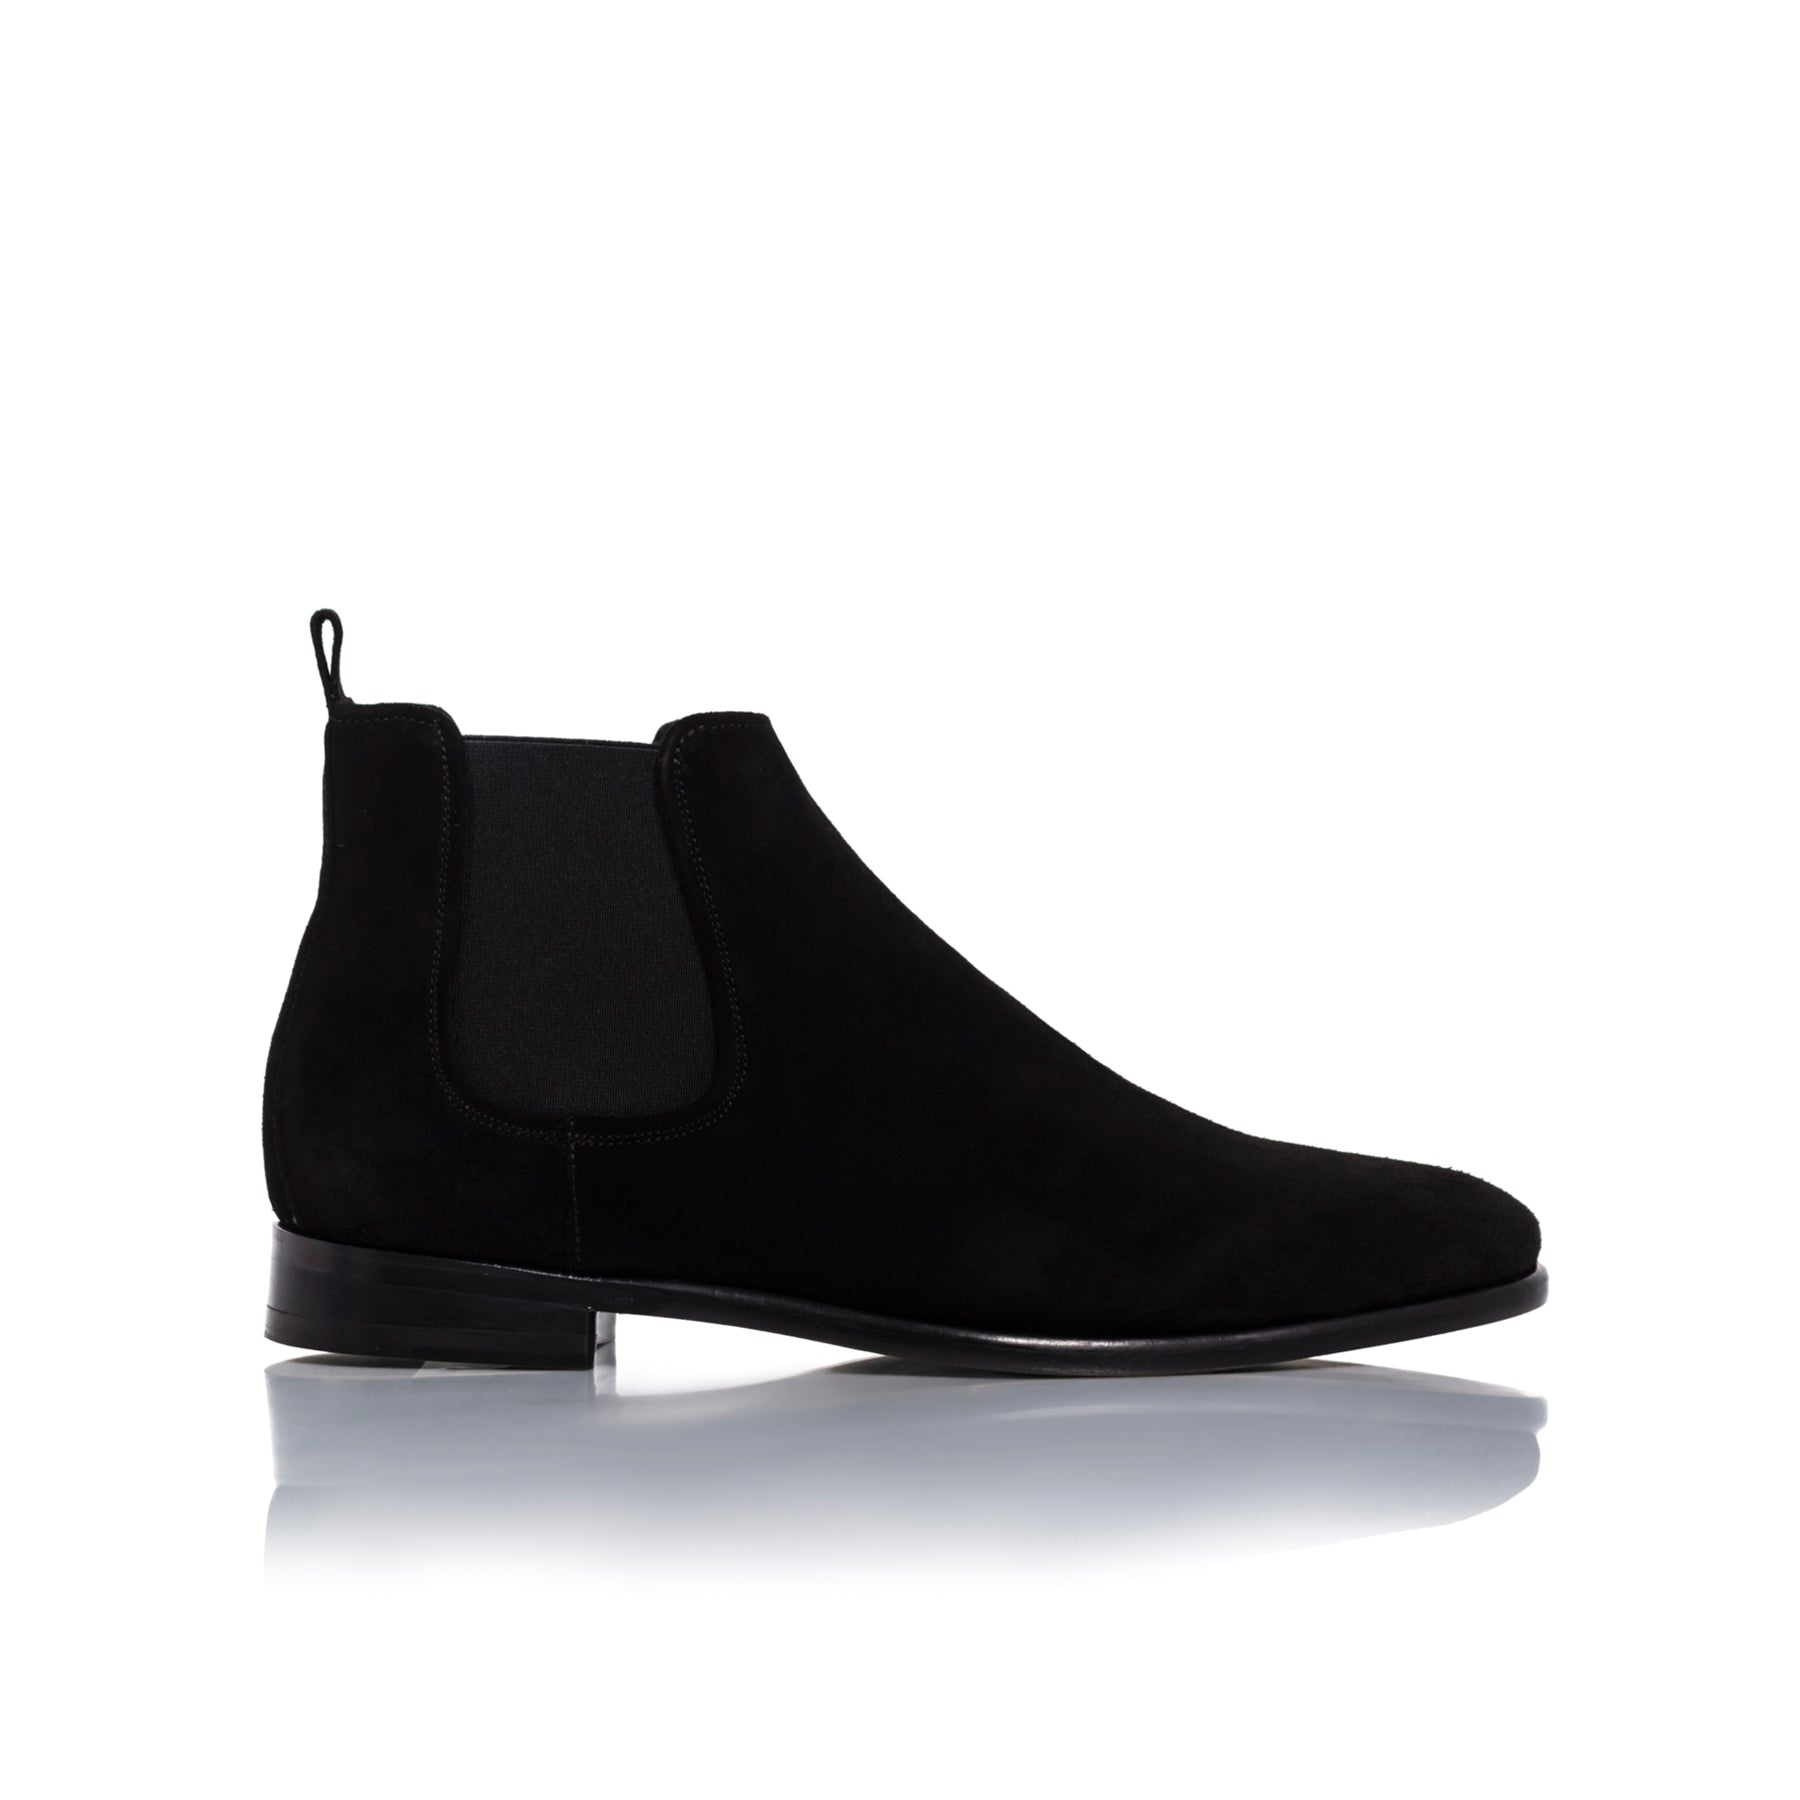 James Black Suede Boots